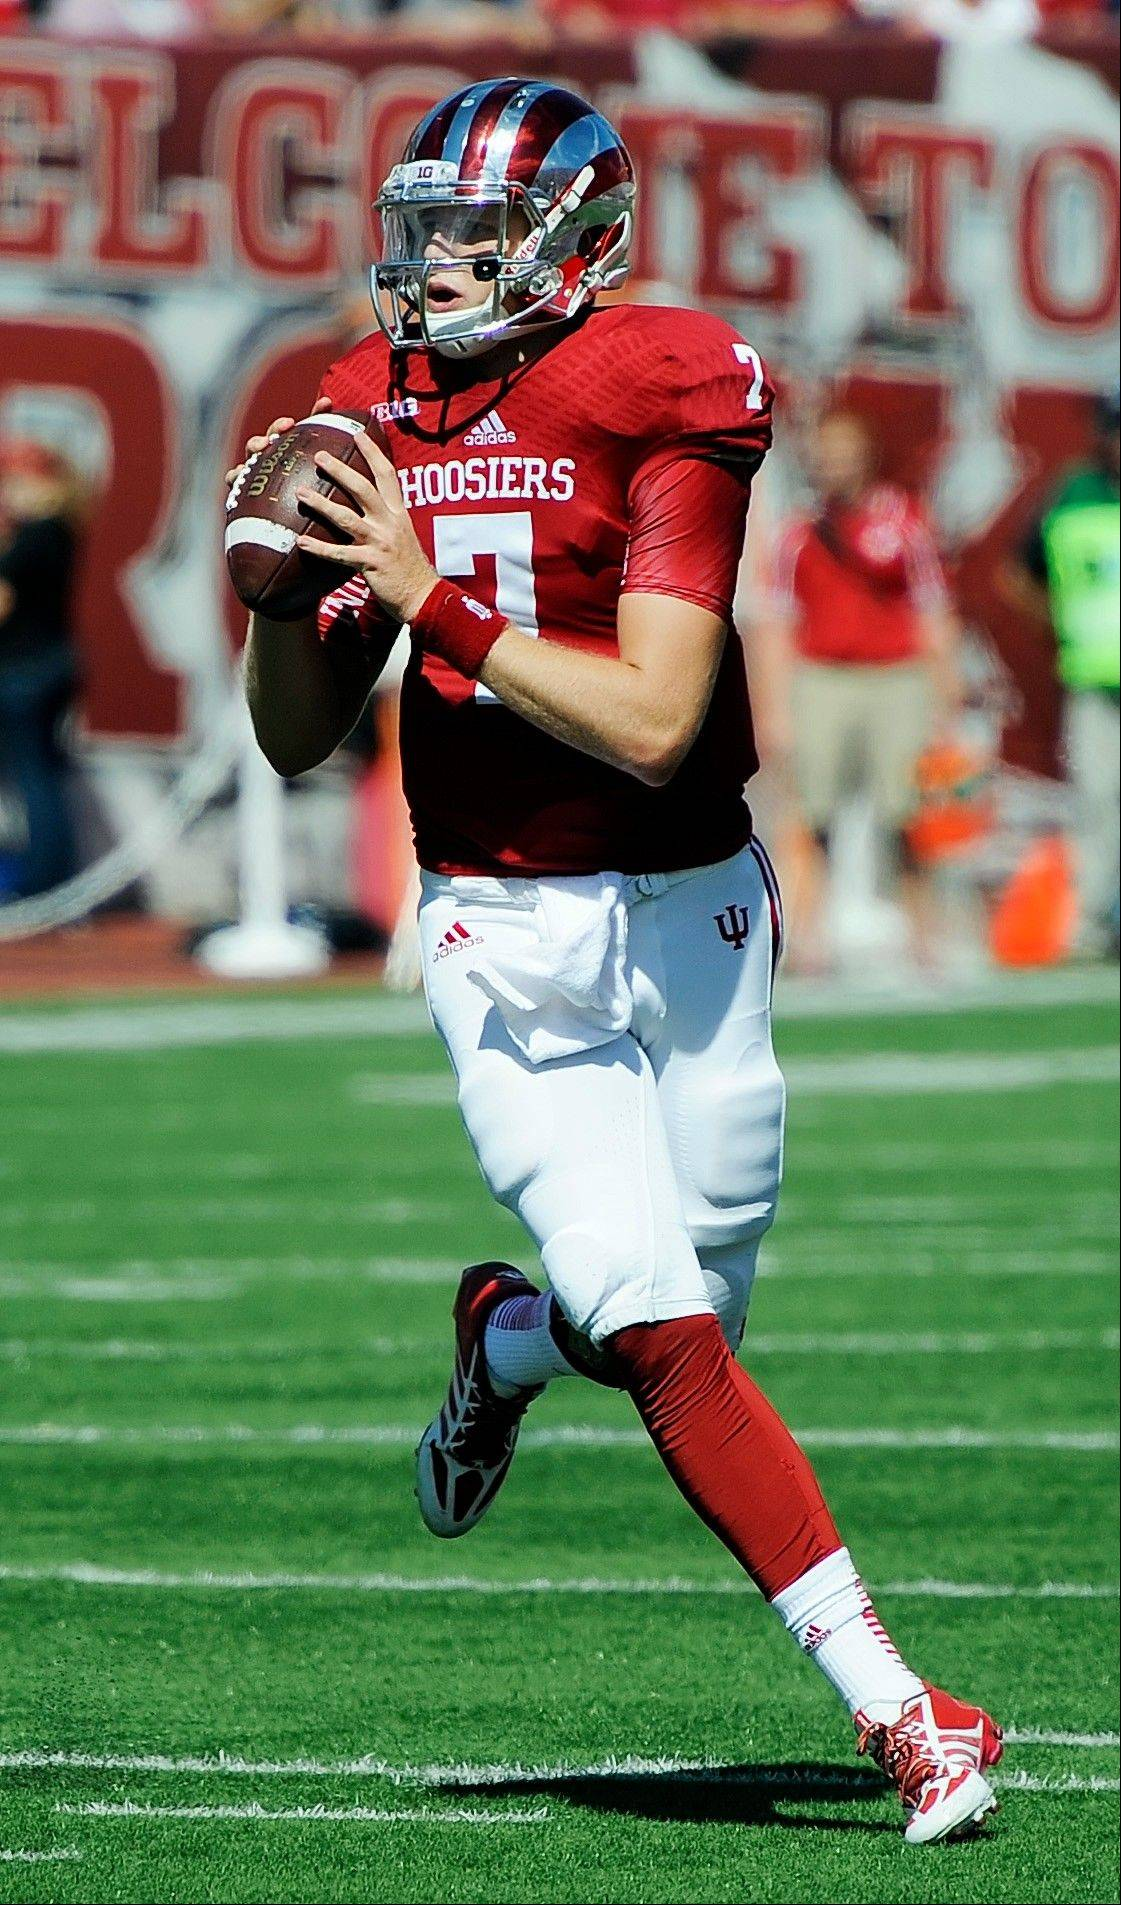 Indiana quarterback Nate Sudfeld rolls out against Bowling Green�s Shaun Joplin during last weekend�s game at Memorial Stadium in Bloomington, Ind.